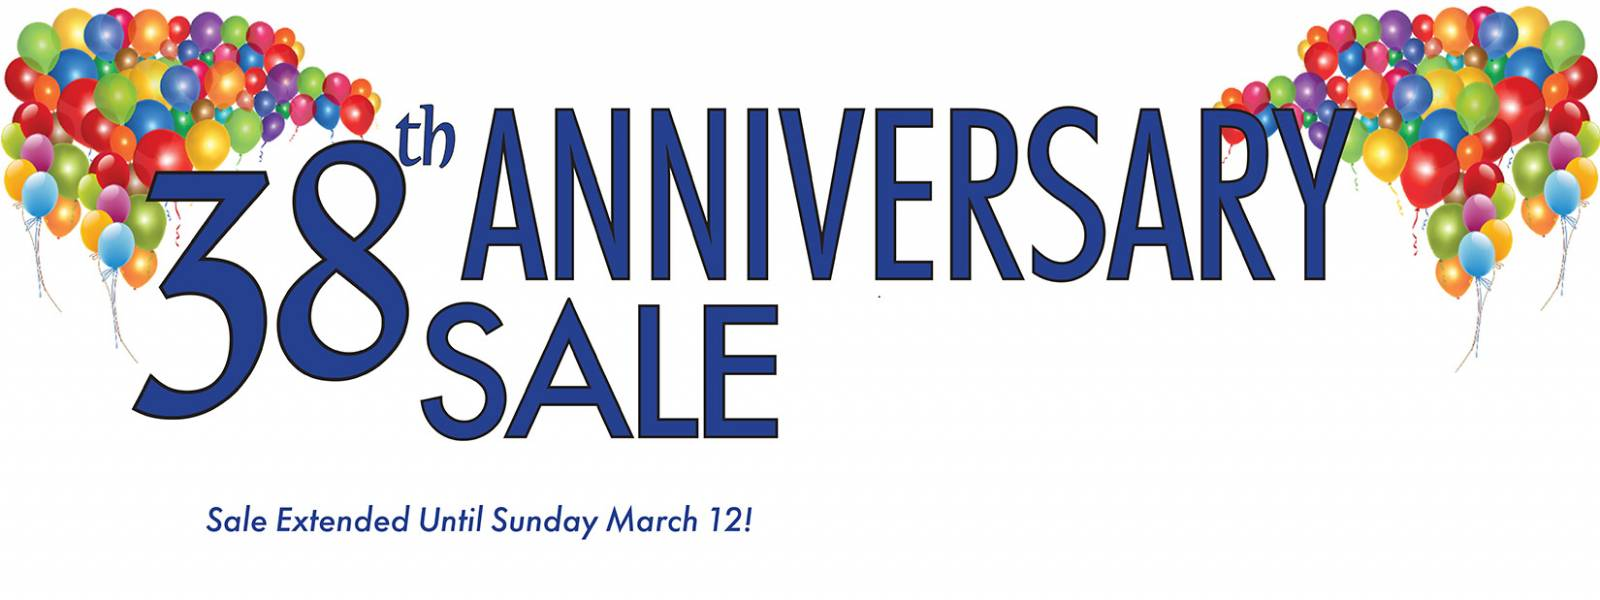 Sofas & Chairs 38th Anniversary Sale